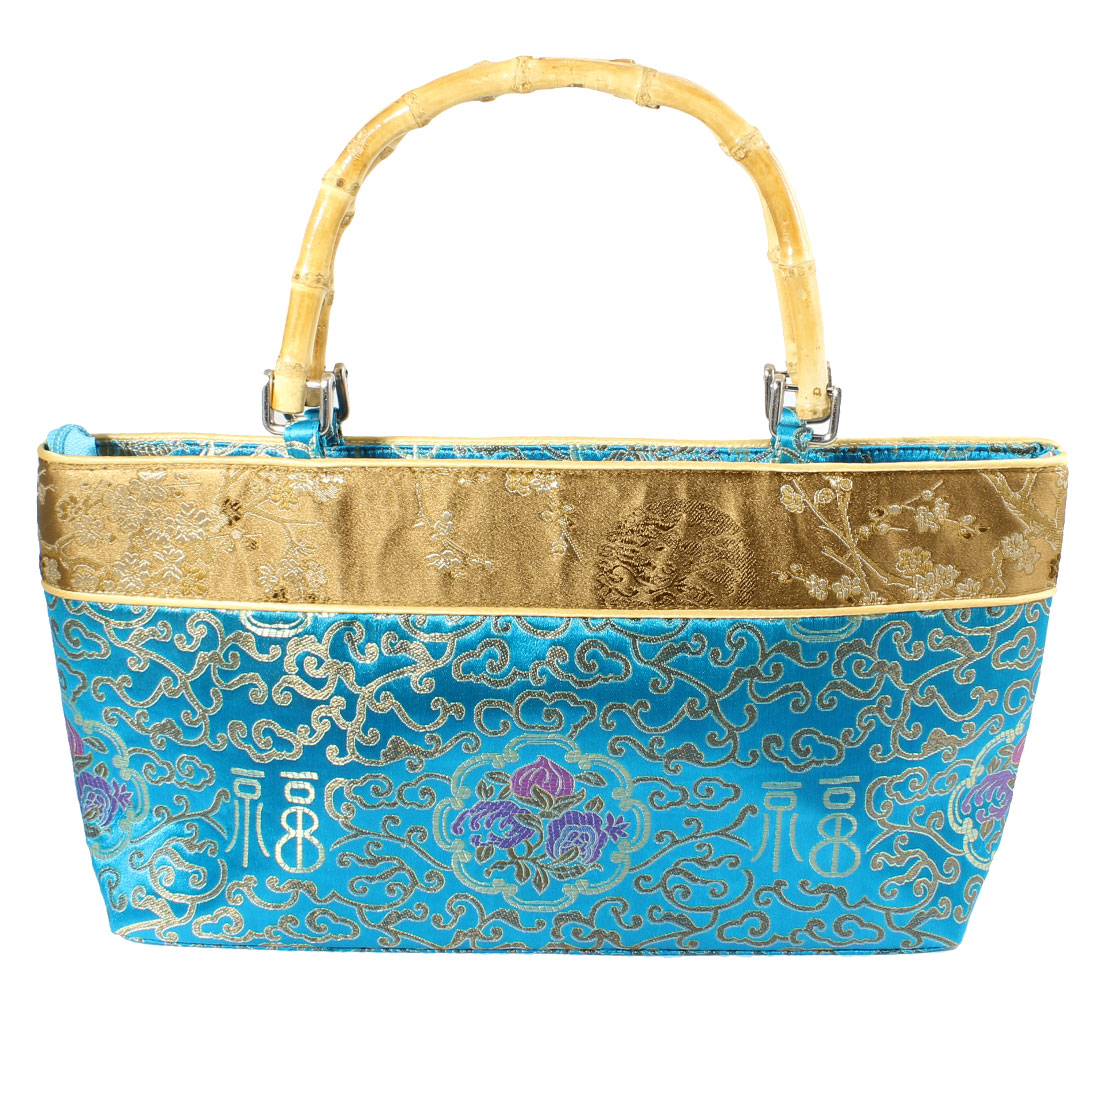 Women 36cm x 17cm x 7.5cm Bamboo Handle Embroider Fu Print Teal Blue Handbag